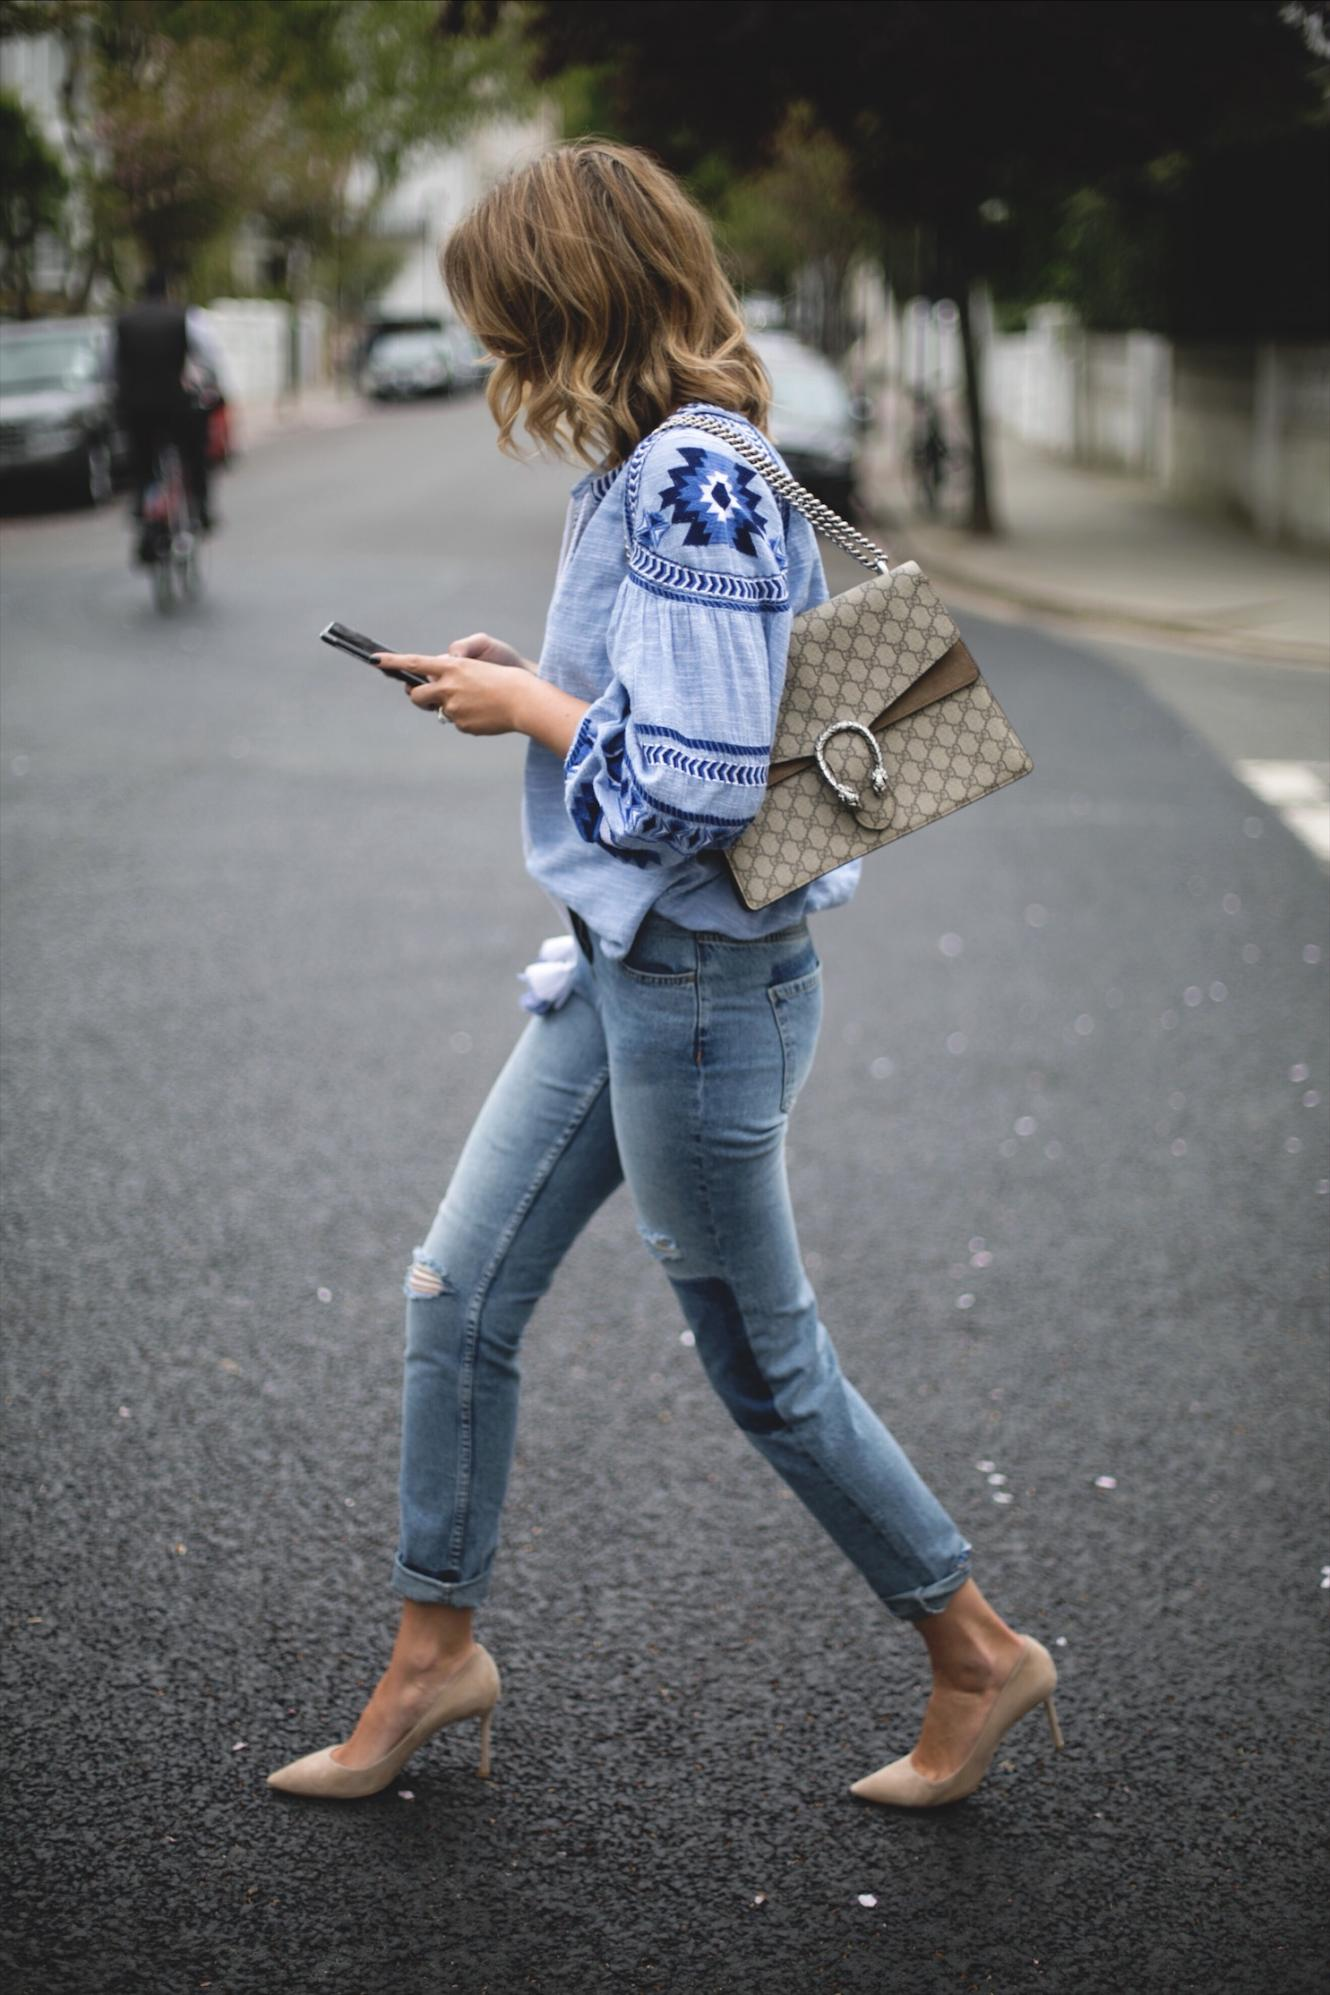 Emma Hill wears embroidered blue top with balloon sleeves, cuffed mid wash jeans, street style photography tips